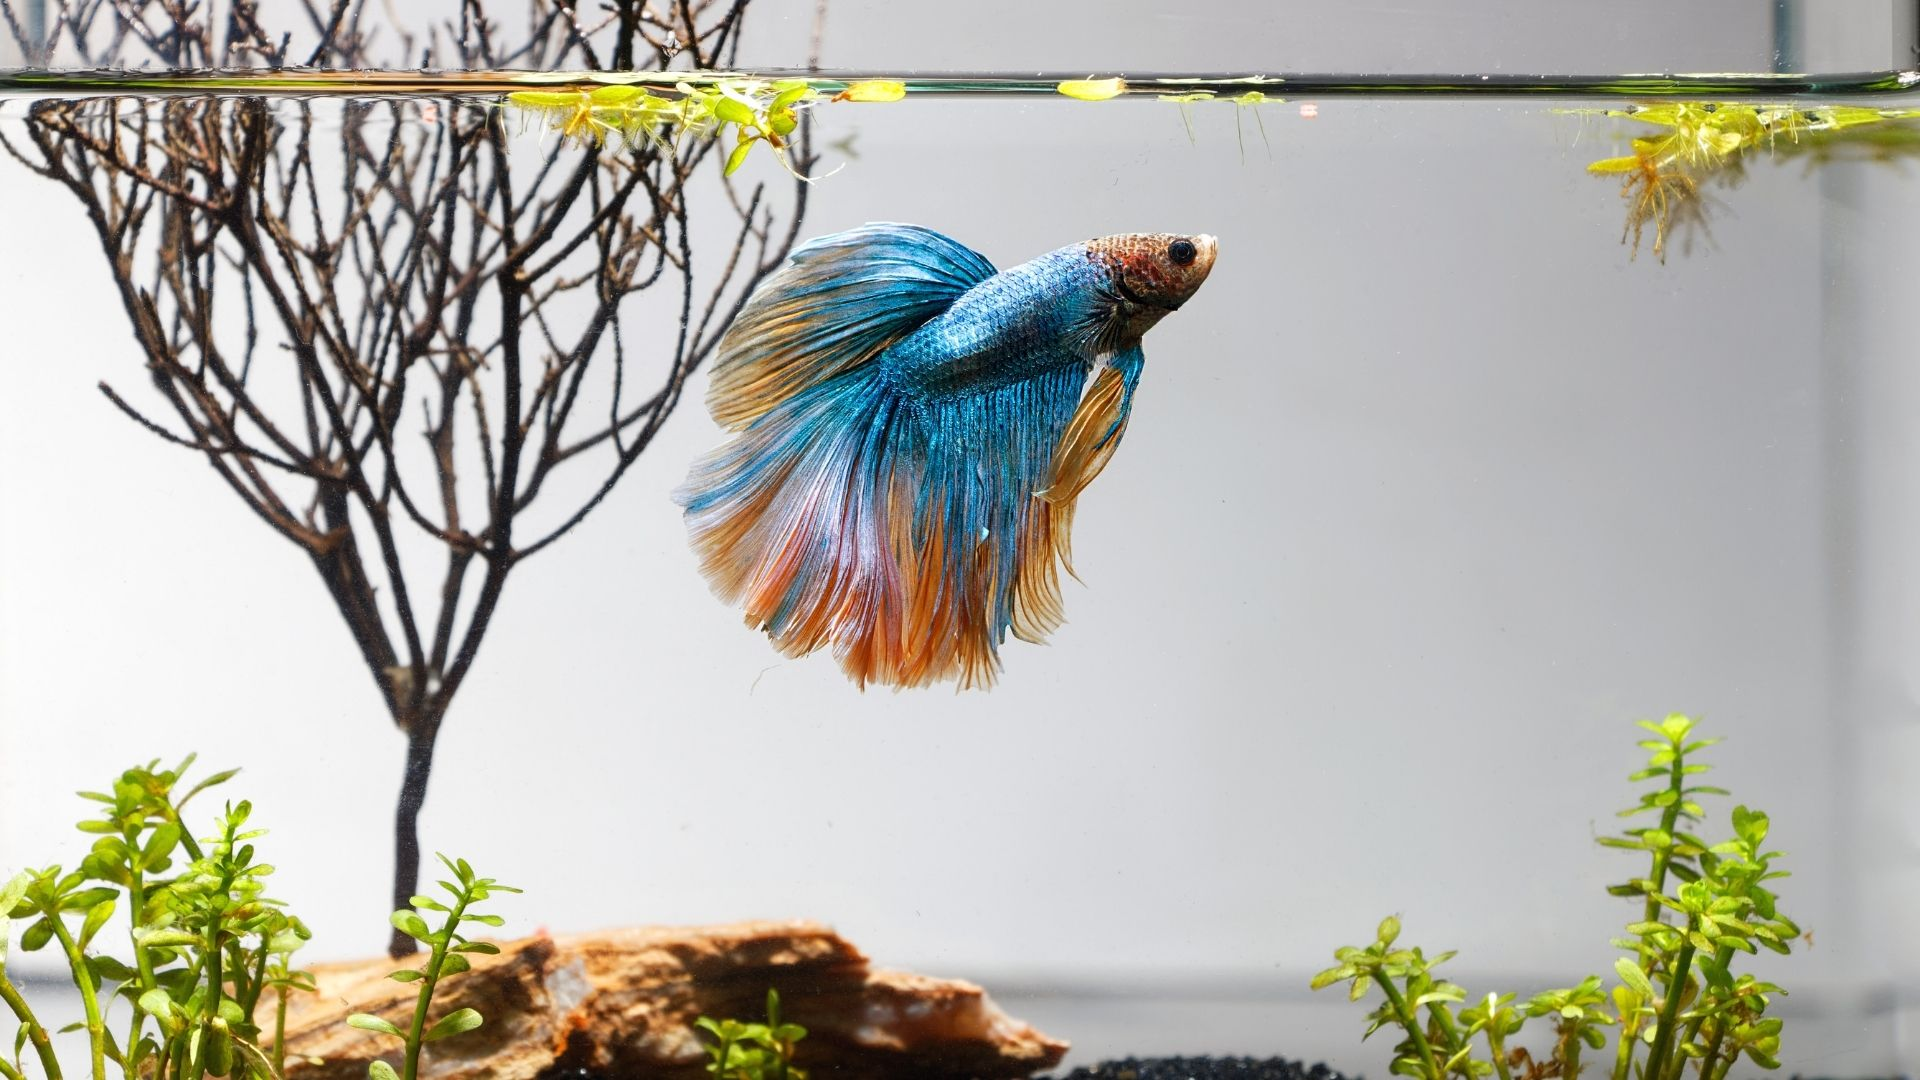 22 Best Plants For Betta Fish (Complete Beginners Guide)